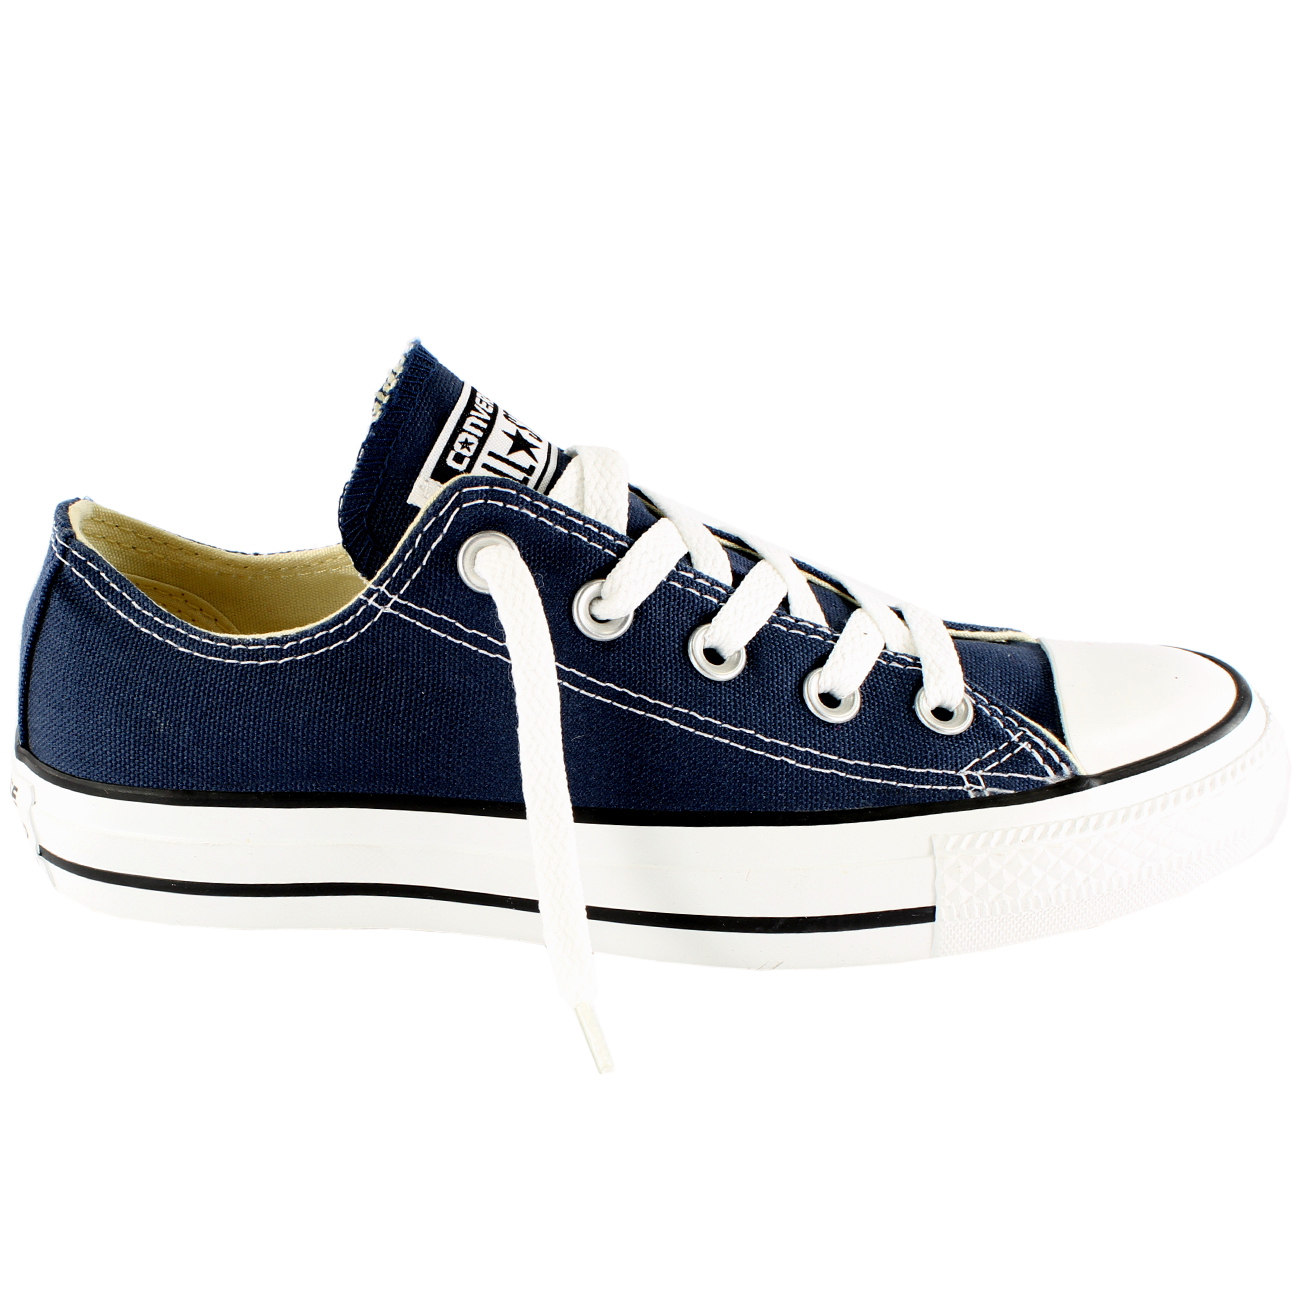 mens converse all star ox low top chuck taylor chucks lace up trainer sizes 7 12 ebay. Black Bedroom Furniture Sets. Home Design Ideas